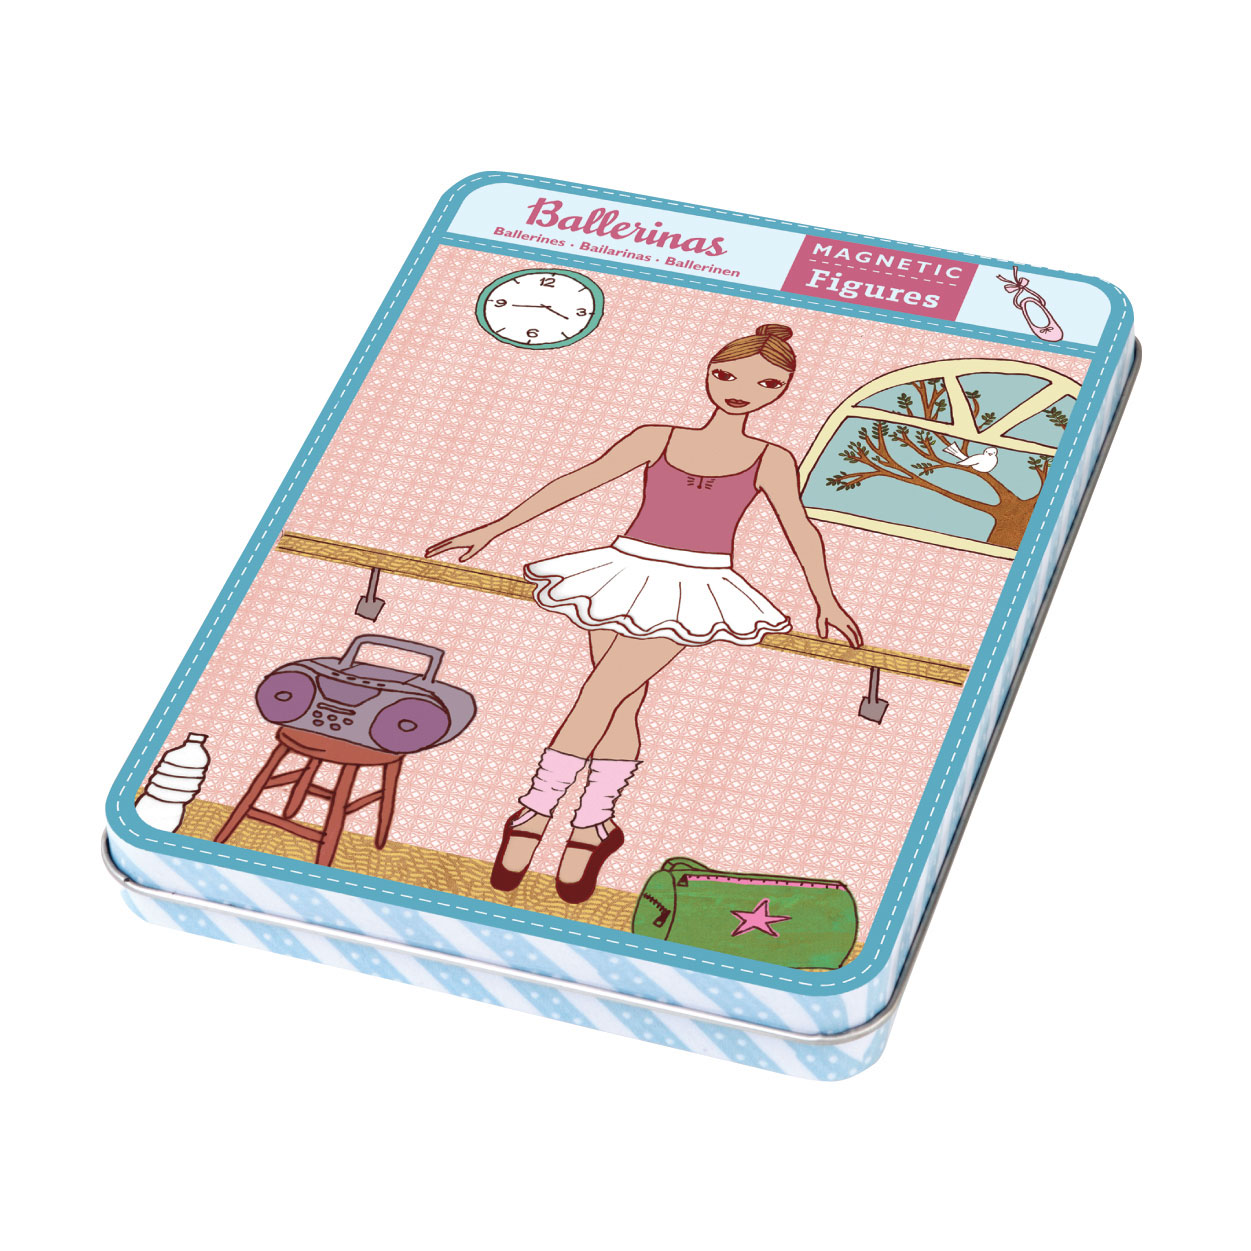 Mudpuppy Magnetic Design Play set  Ballerinas